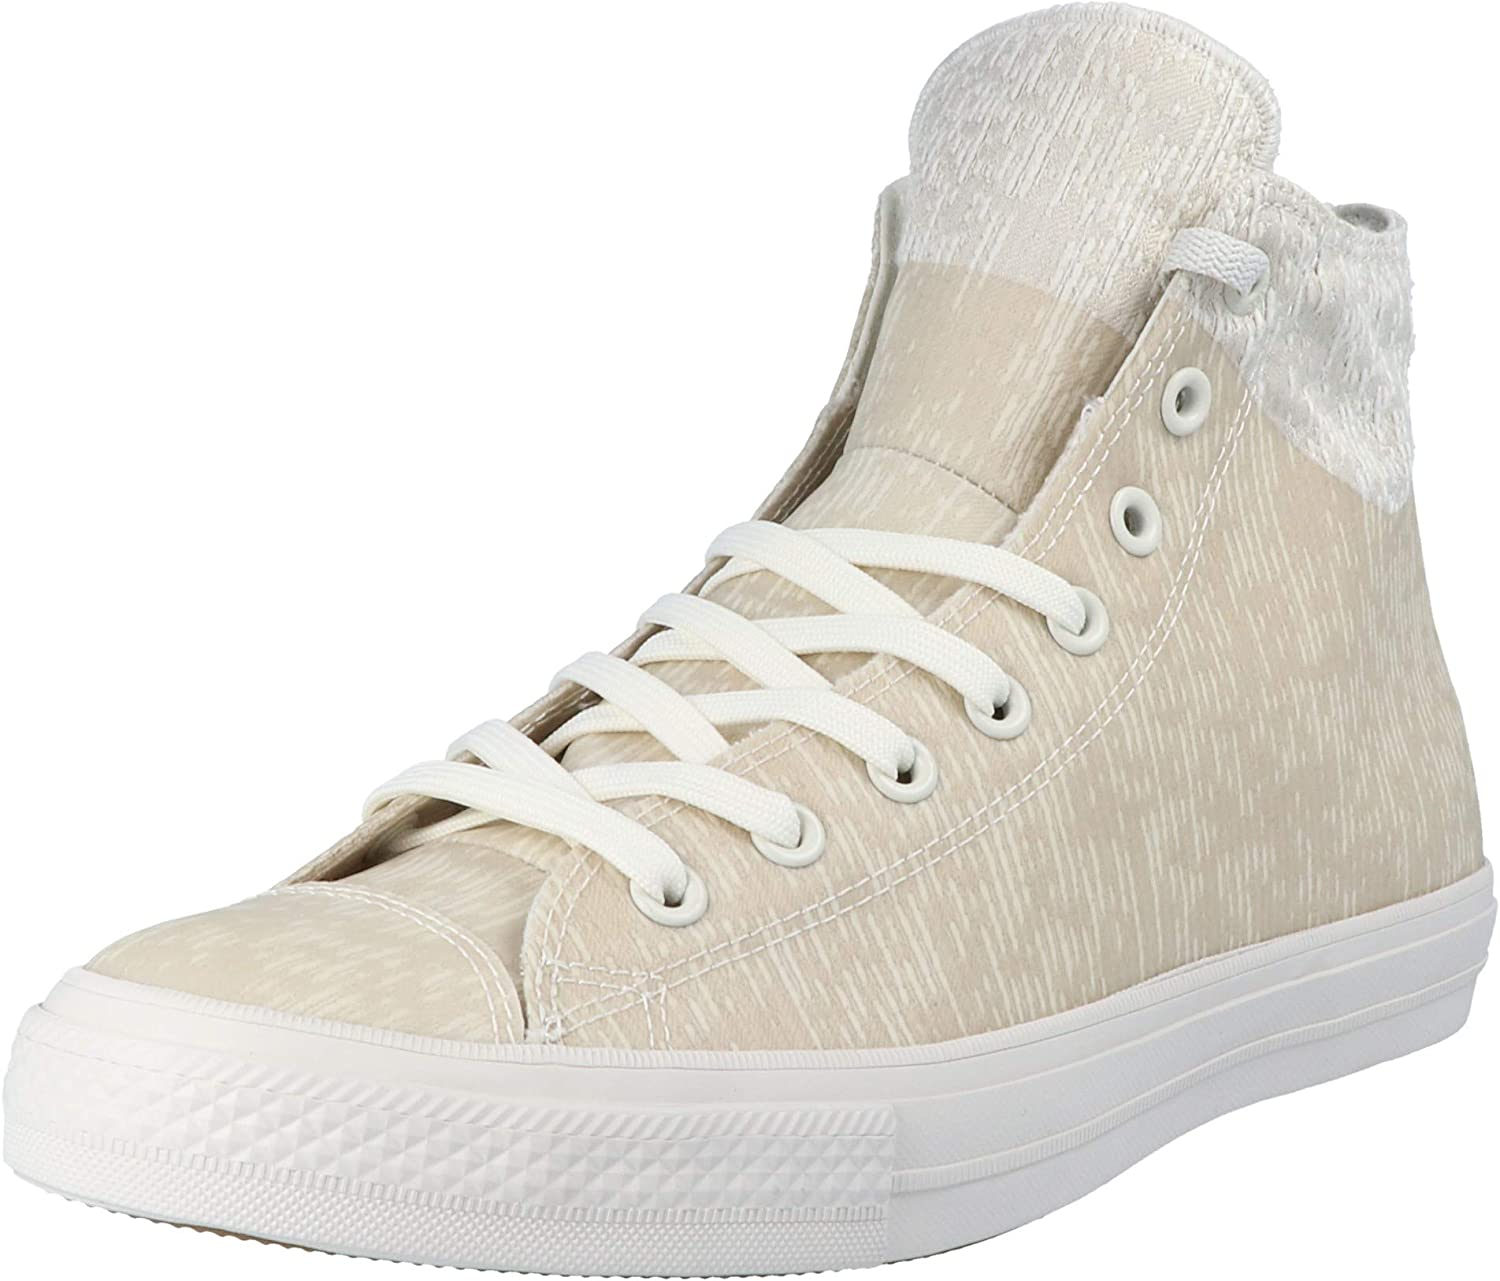 Converse Chuck Taylor All Star II Translucent Rubber Hi ...